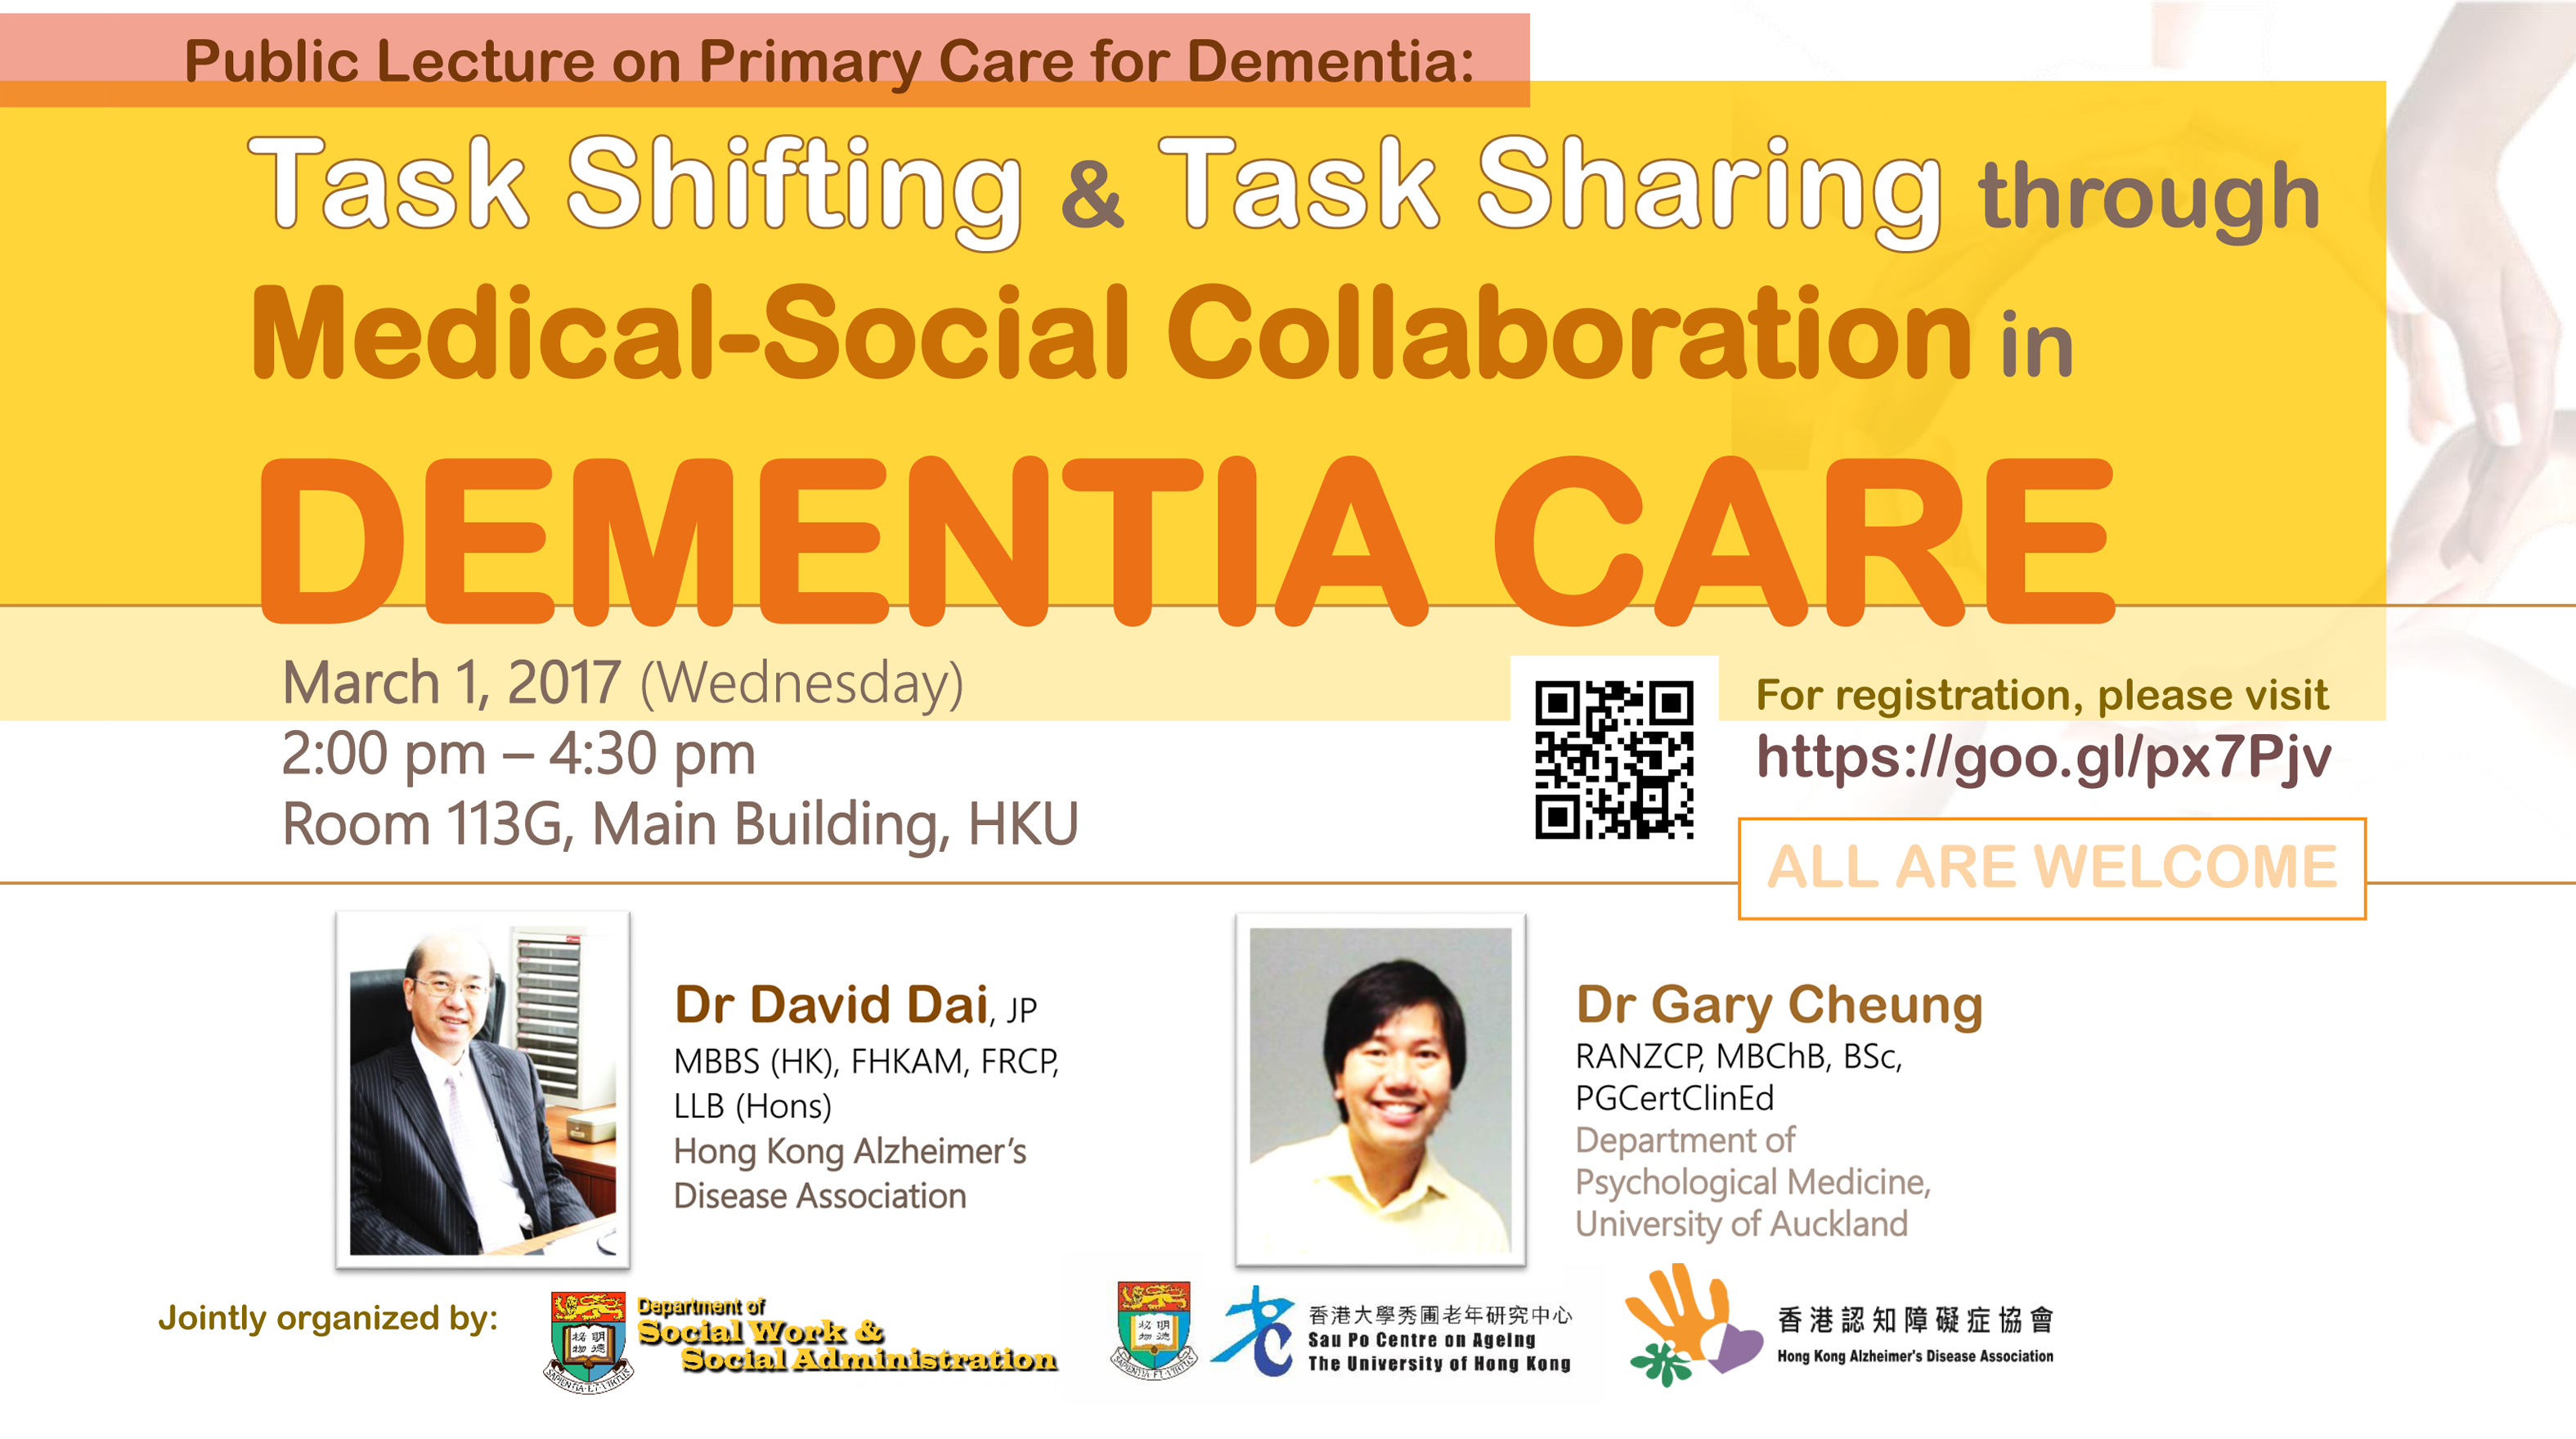 Public Lecture on Primary Care for Dementia